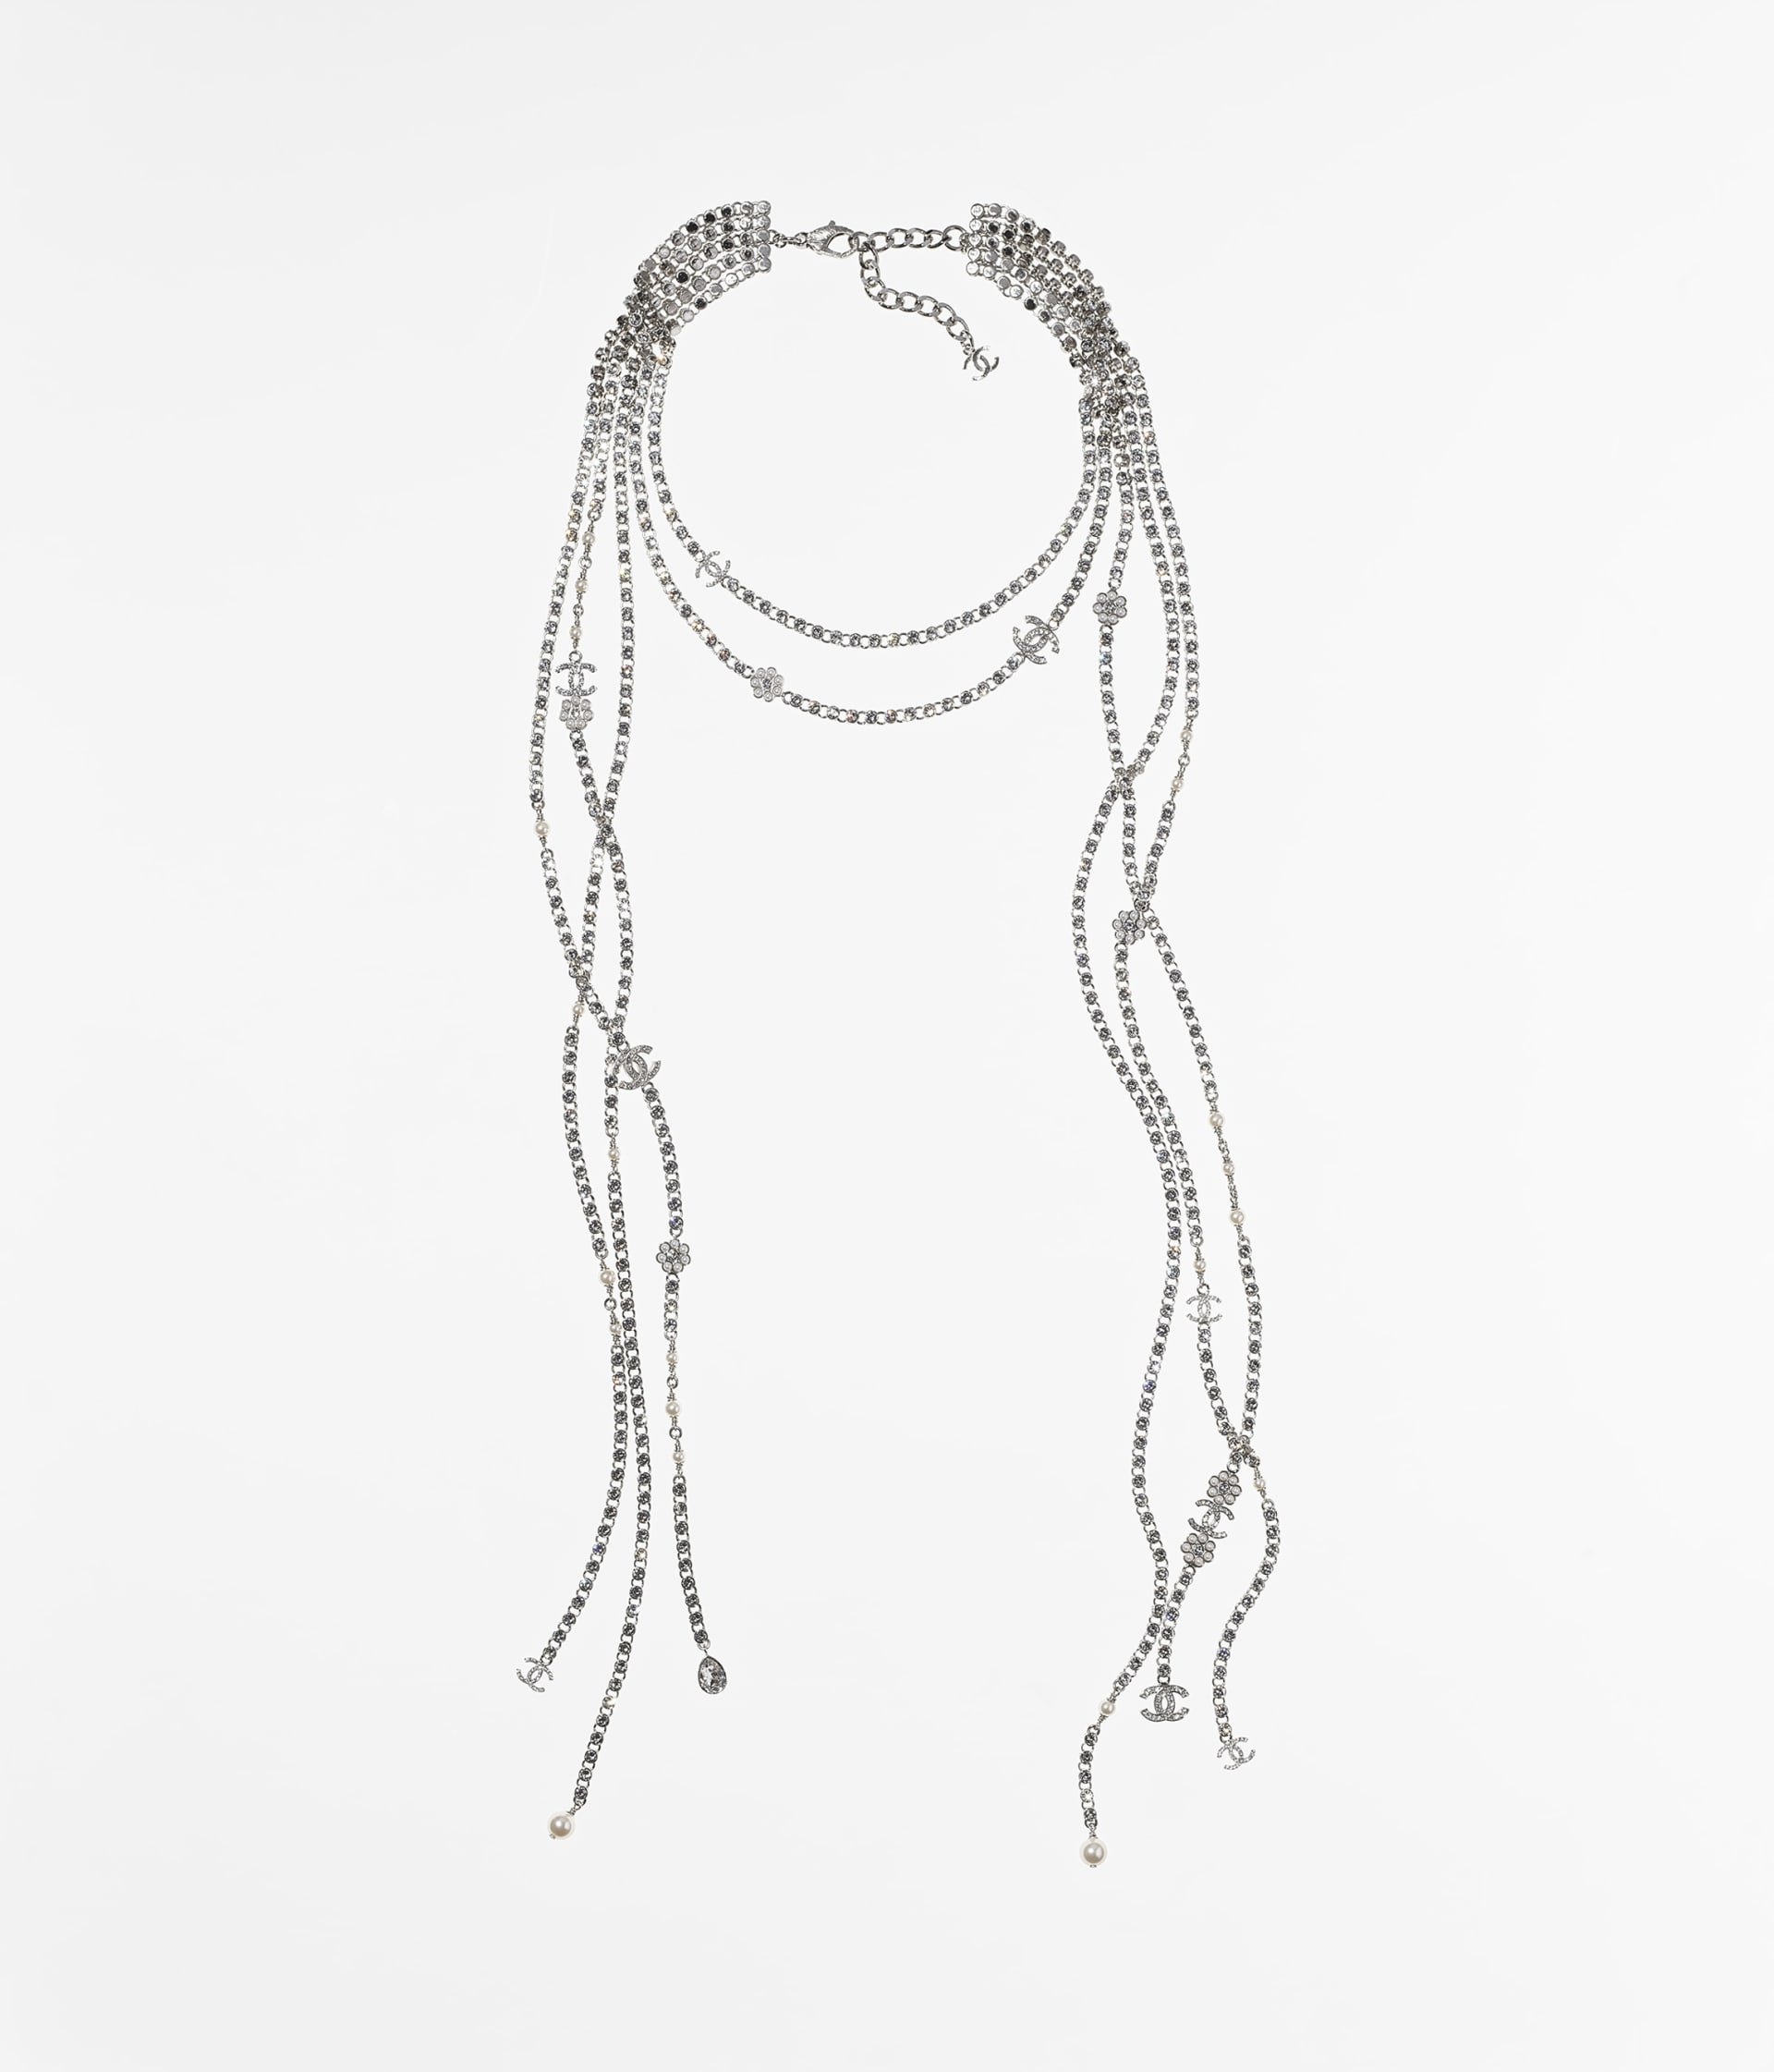 image 1 - Necklace - Metal, Strass & Glass Pearls - Silver, Crystal & Pearly White